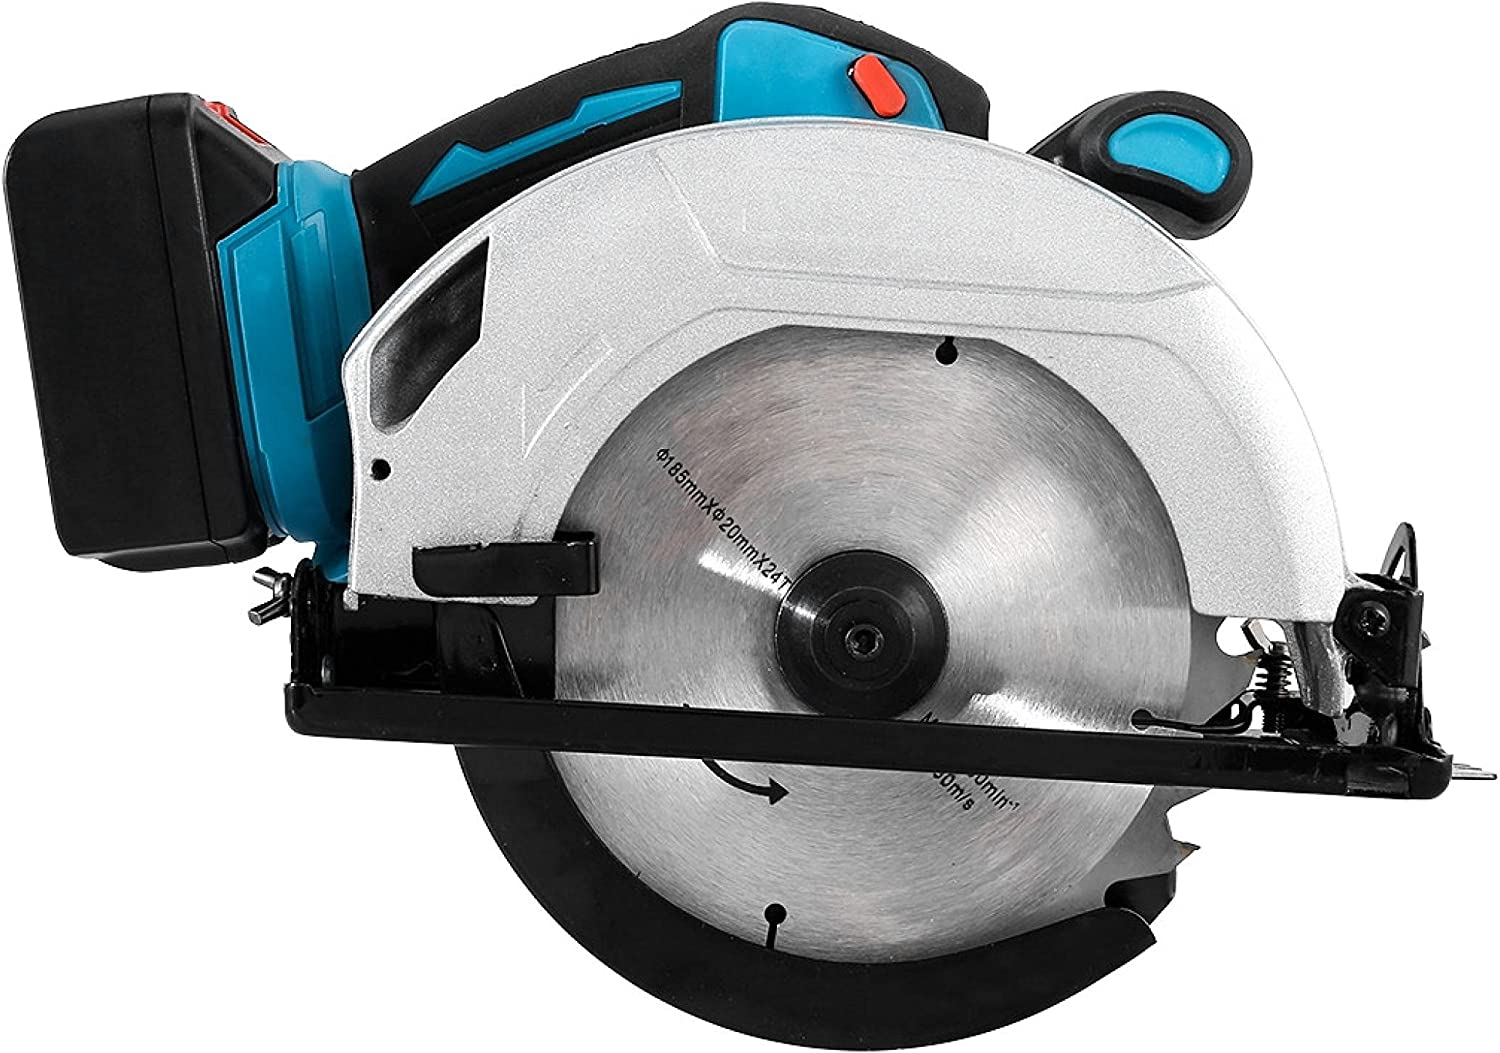 CCYY 20V 7-1 Online limited product 4 in Import Cordless Batter Circular Includes Saw Lithium